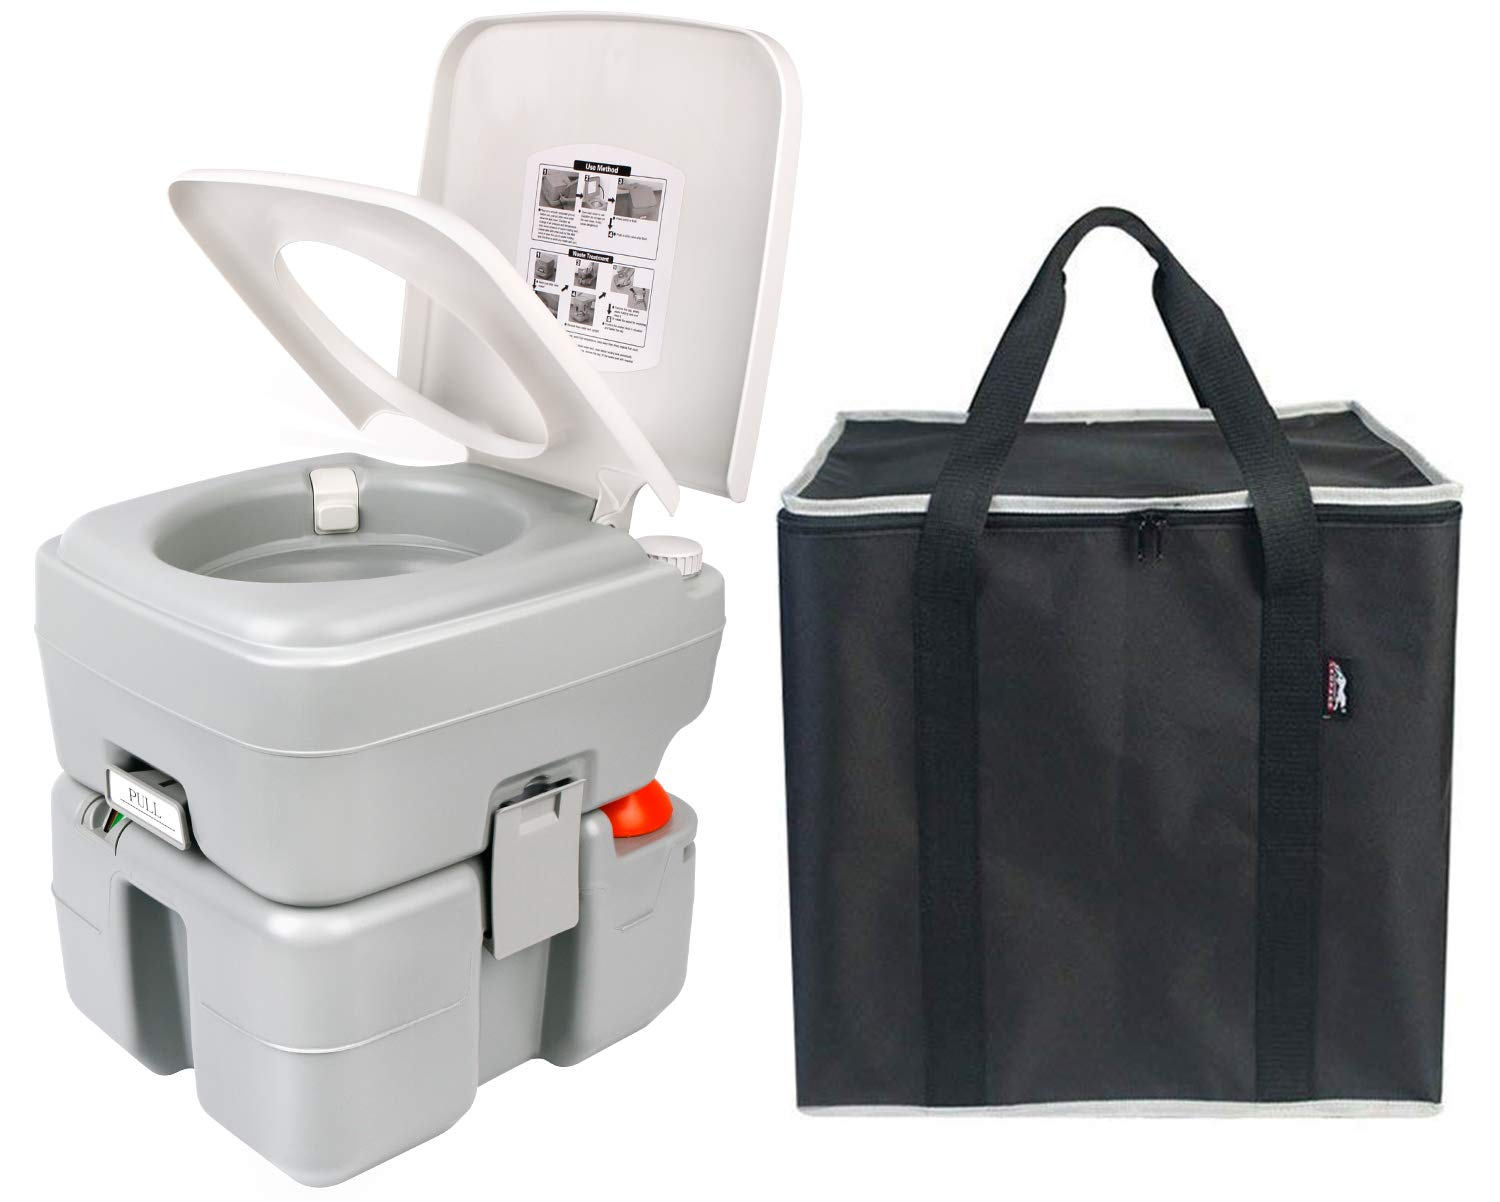 Best portable toilet for camping